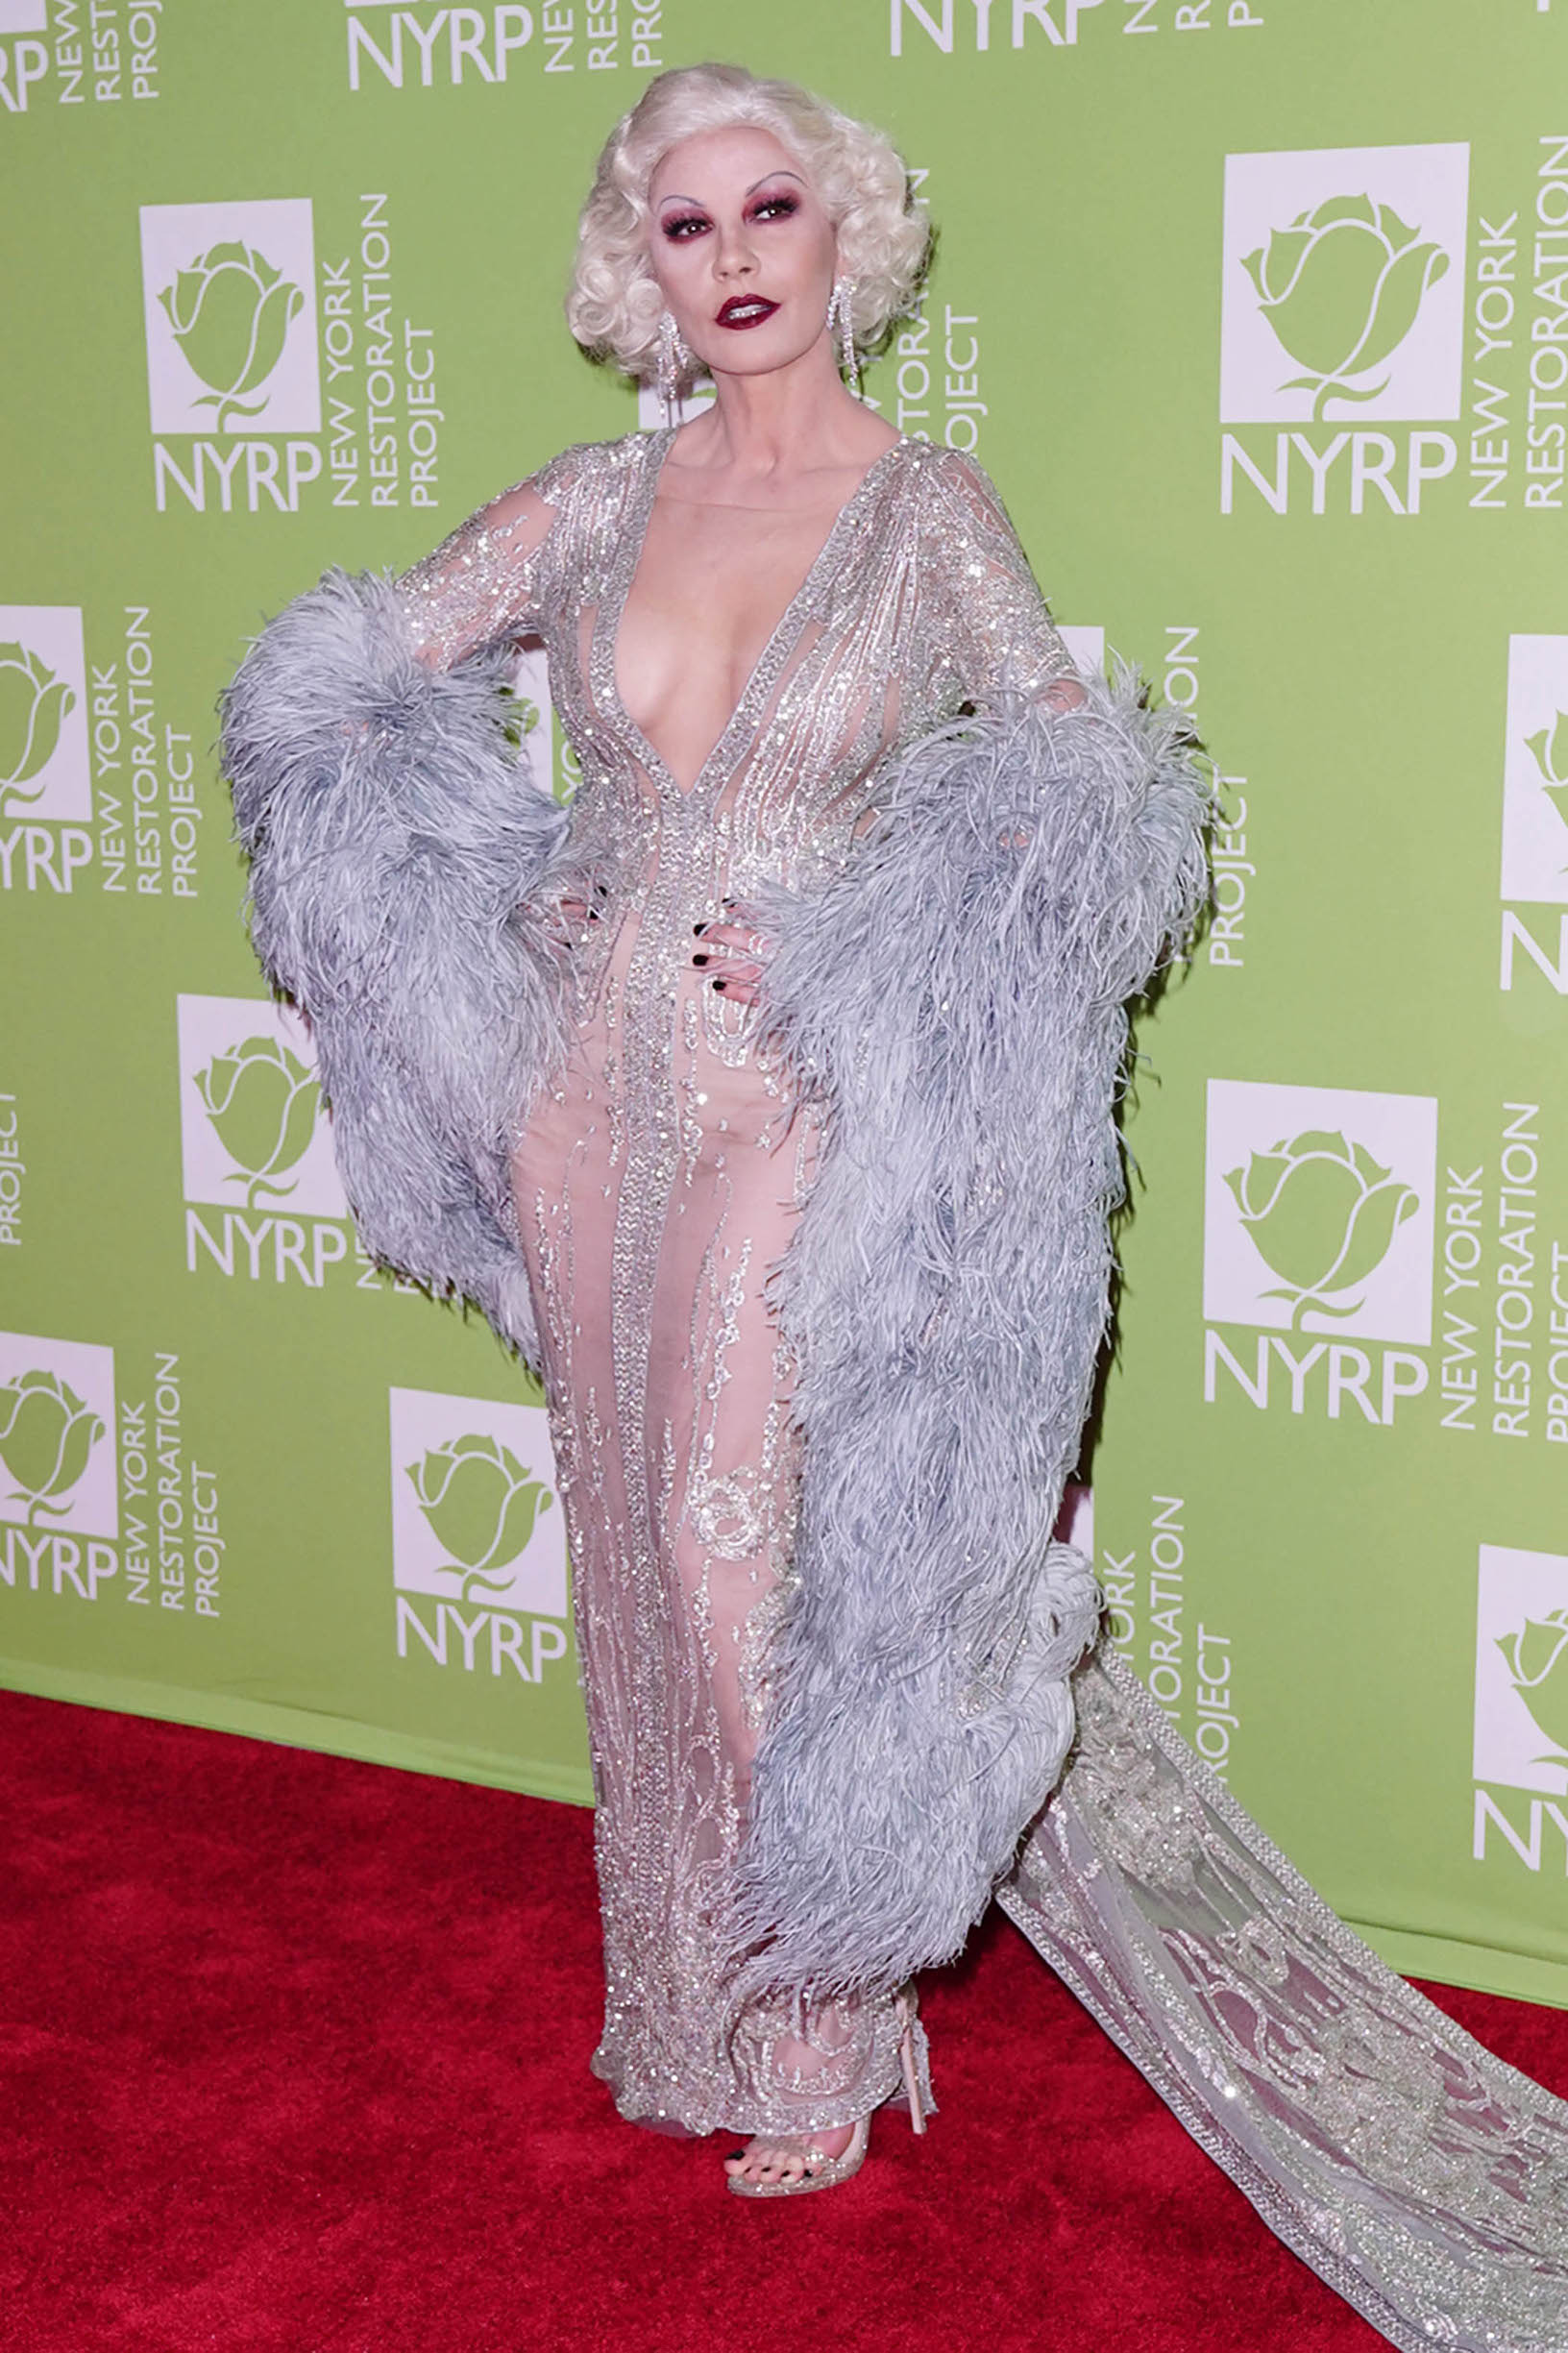 -New York, NY - 20191031-Bette Midler`s 2019 Hulaween Party  -PICTURED: Catherine Zeta-Jones -, Image: 480269376, License: Rights-managed, Restrictions: , Model Release: no, Credit line: JOHN NACION / INSTAR Images / Profimedia